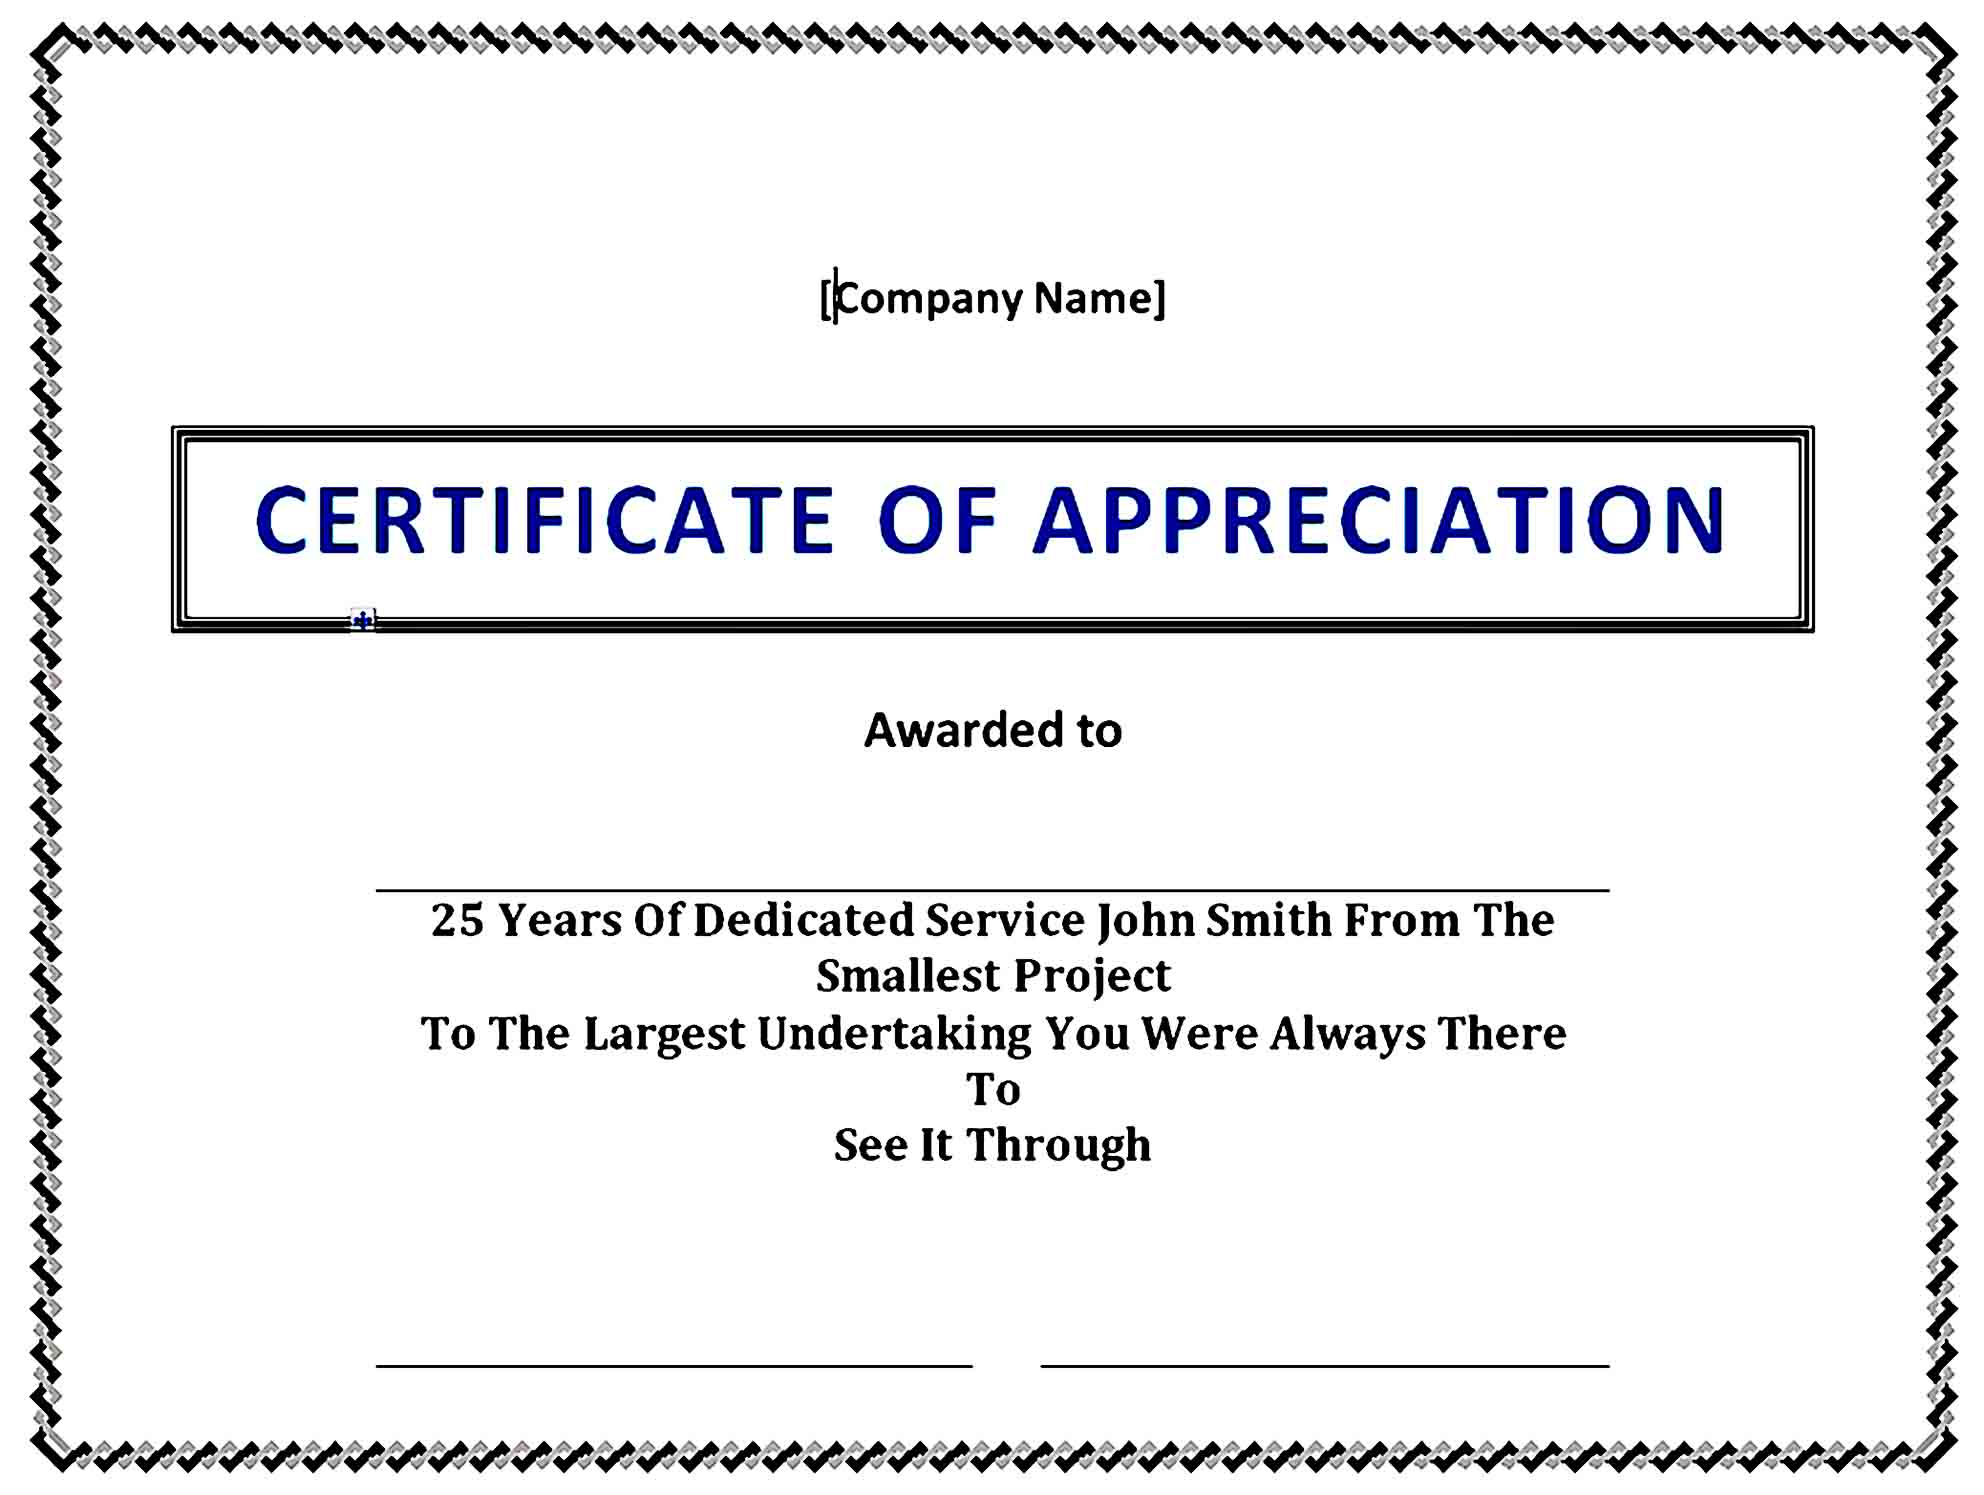 Certificate of Appreciation 05